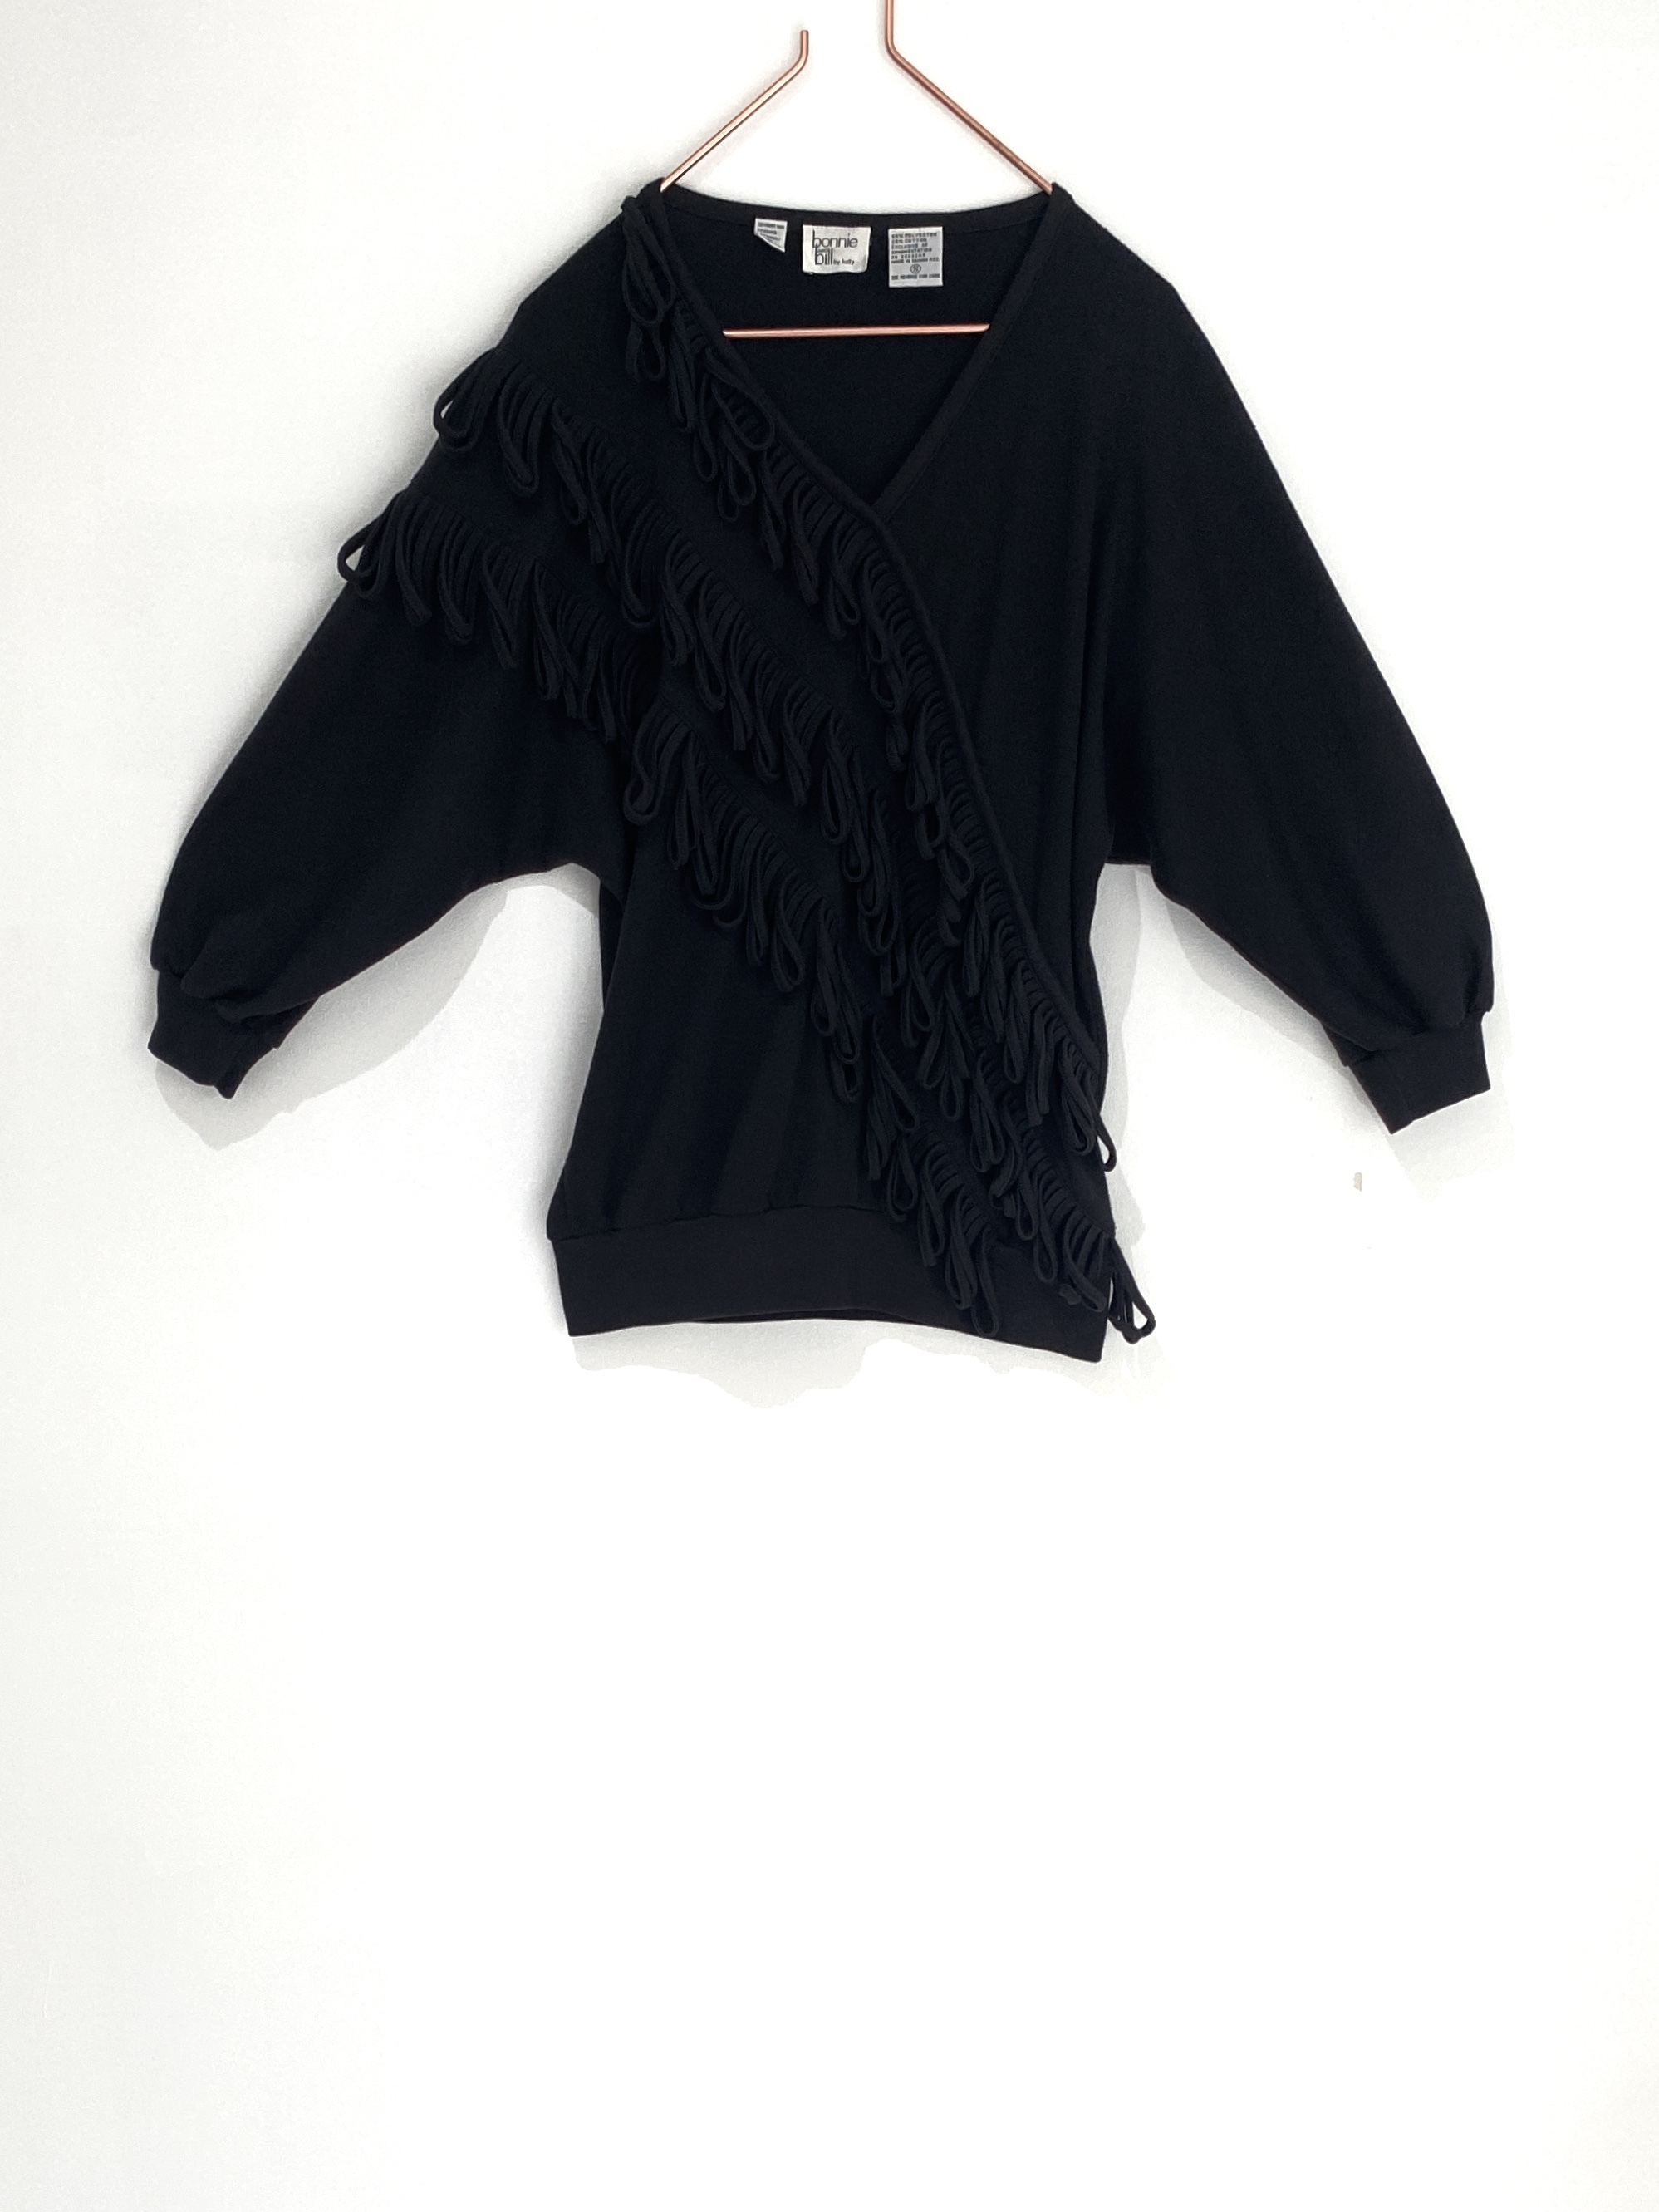 ◼︎80s vintage braid cotton blend tops from U.S.A.◼︎